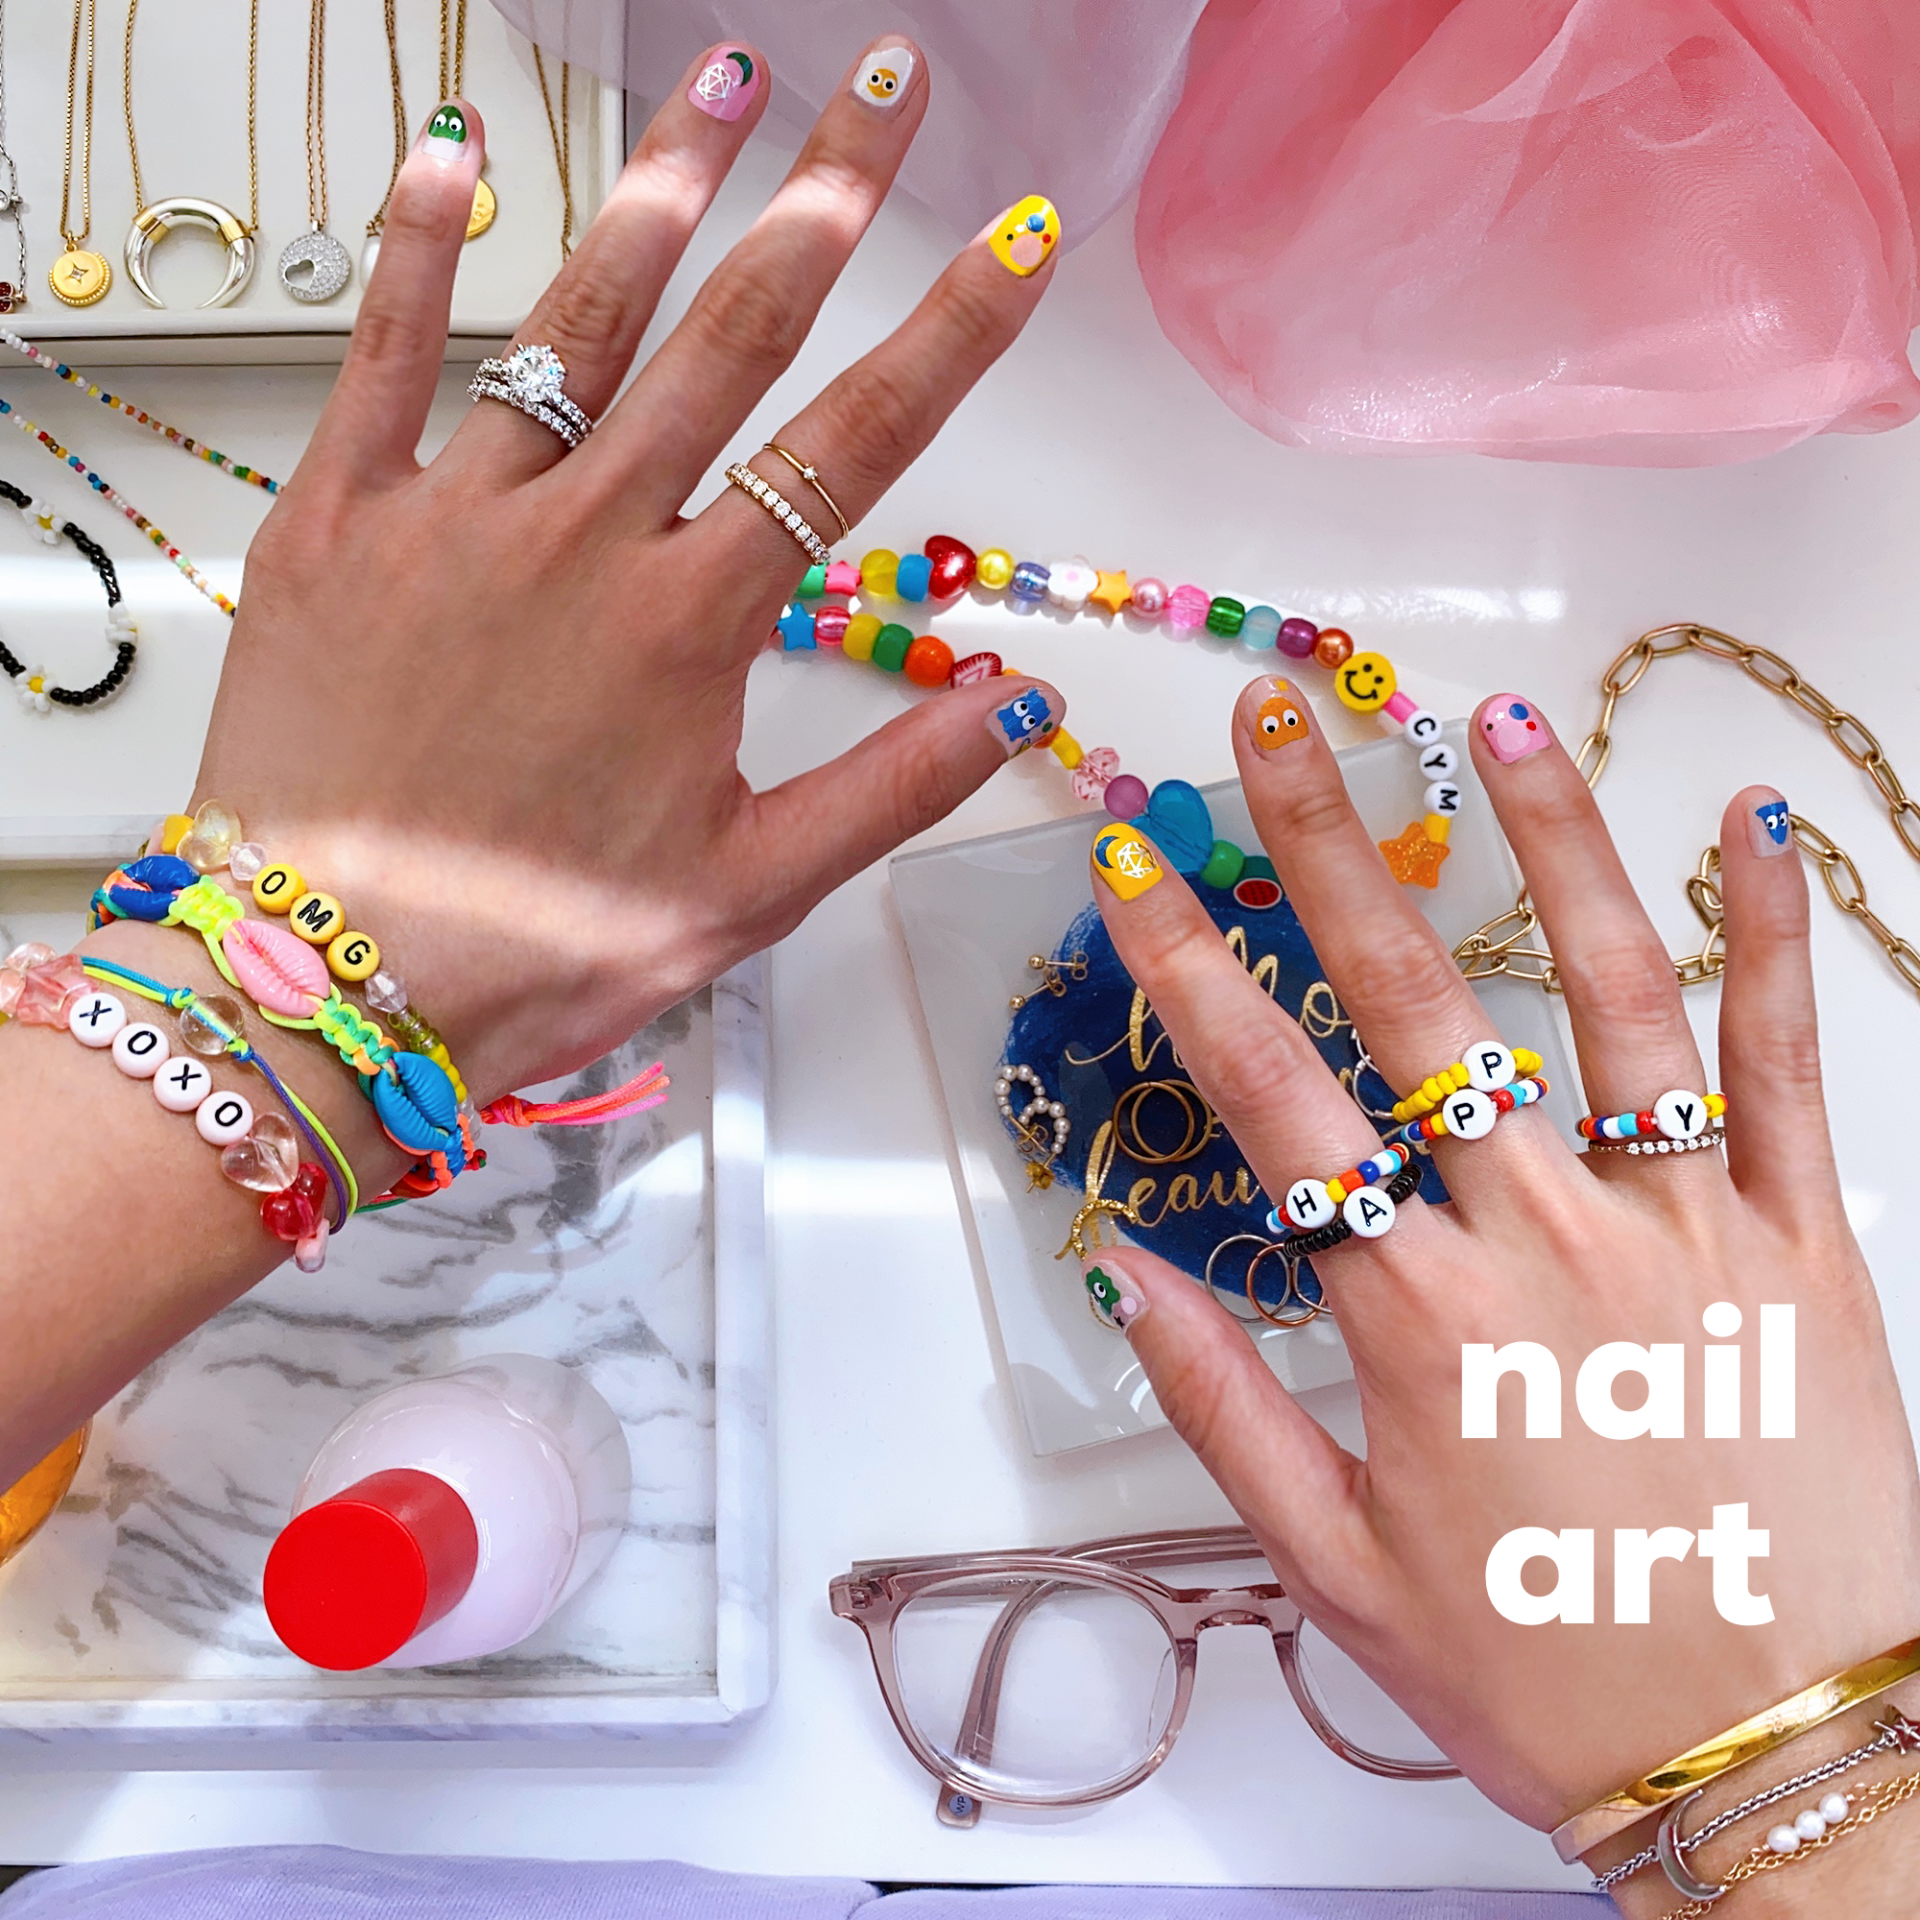 DIY nail sticker art manicure tutorial